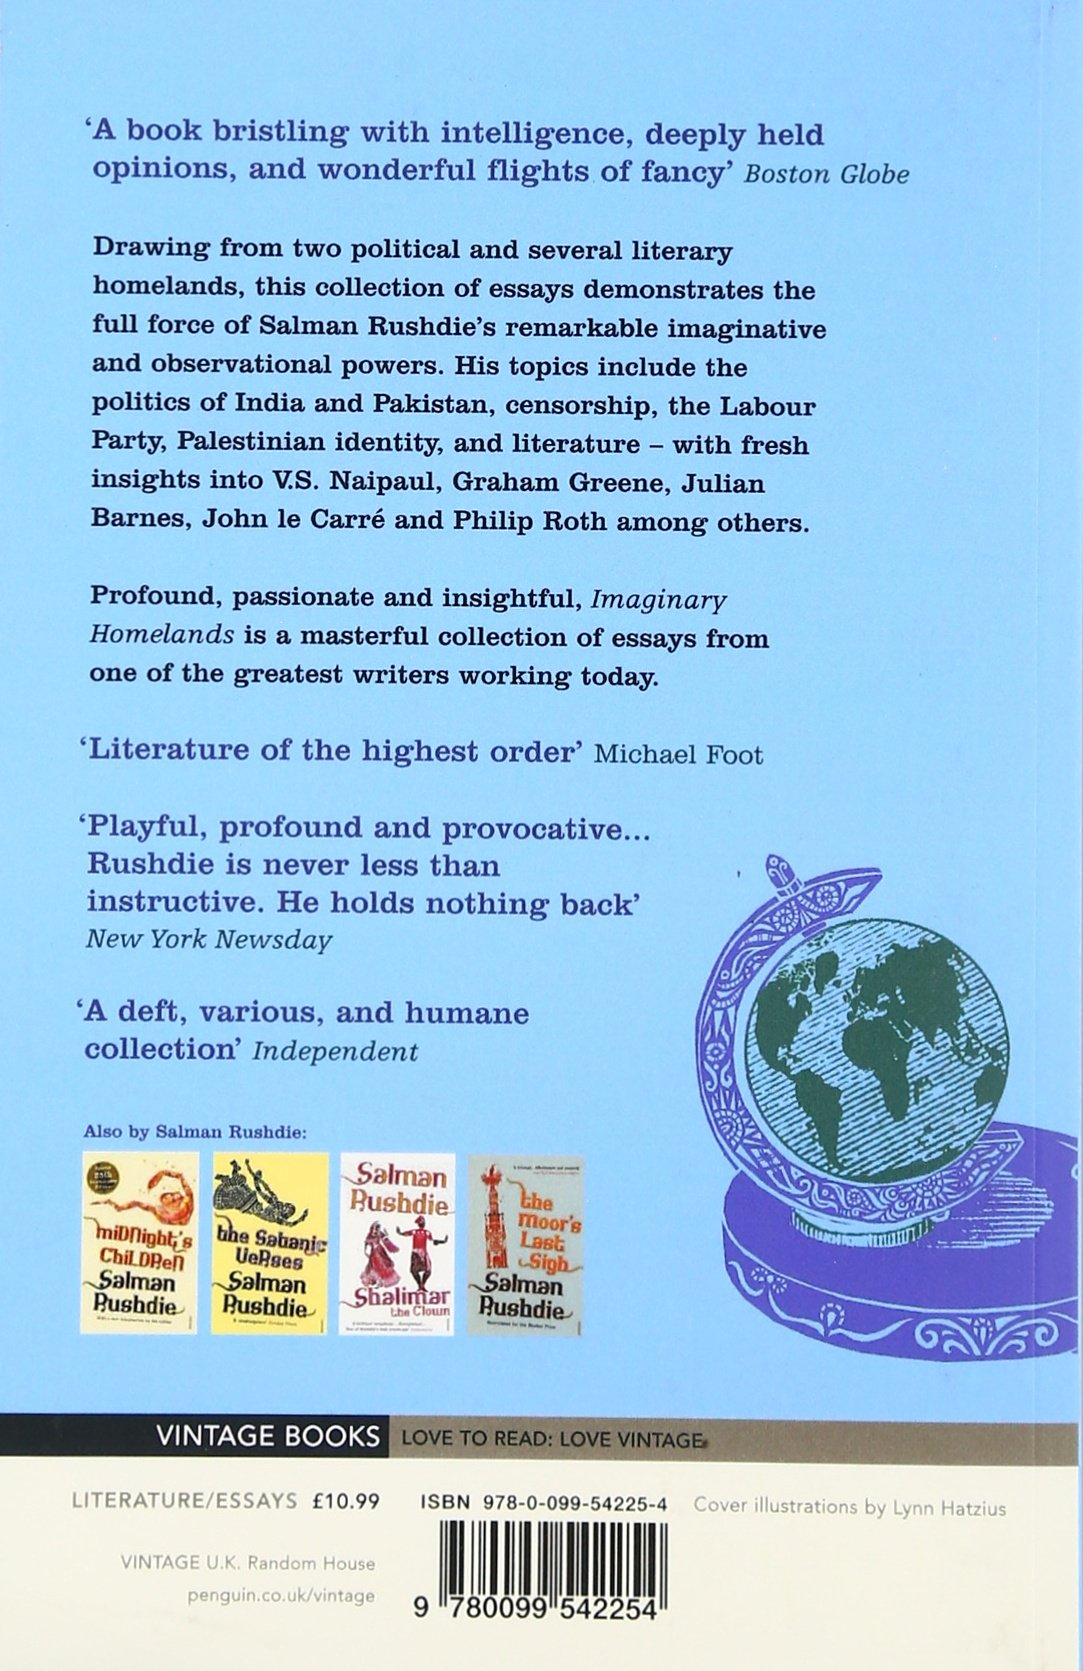 imaginary homelands essays and criticism 1981 1991 co uk imaginary homelands essays and criticism 1981 1991 co uk salman rushdie 9780099542254 books